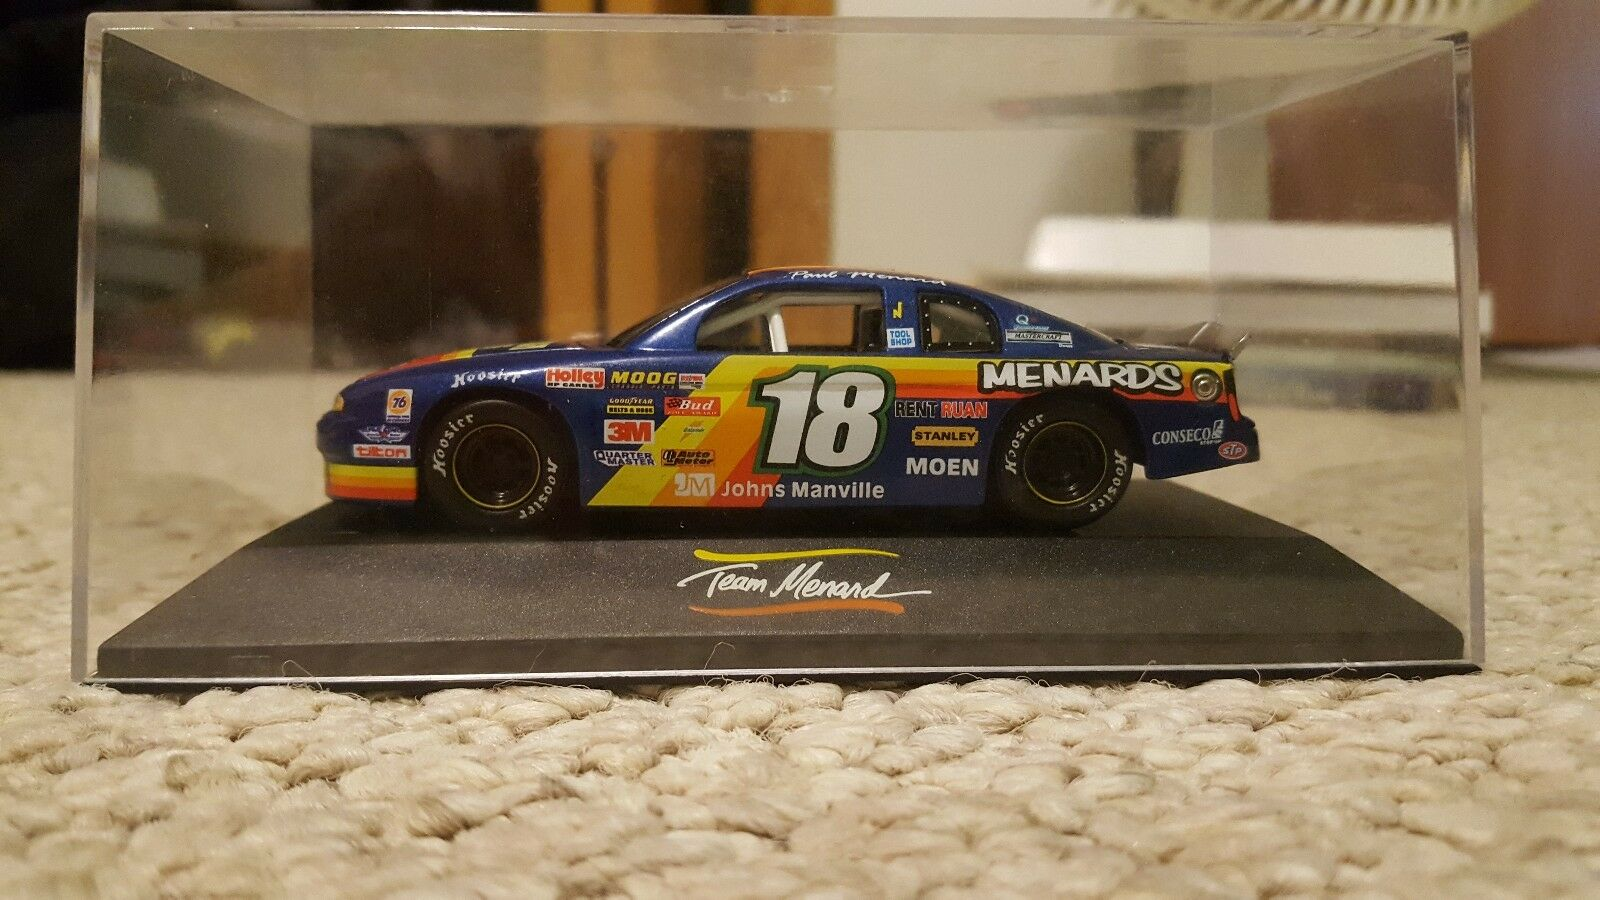 VTG 2001 Paul Menard Re Max Max Max Challenge Series 1 43 Diecast Car & Display Case 67ec46